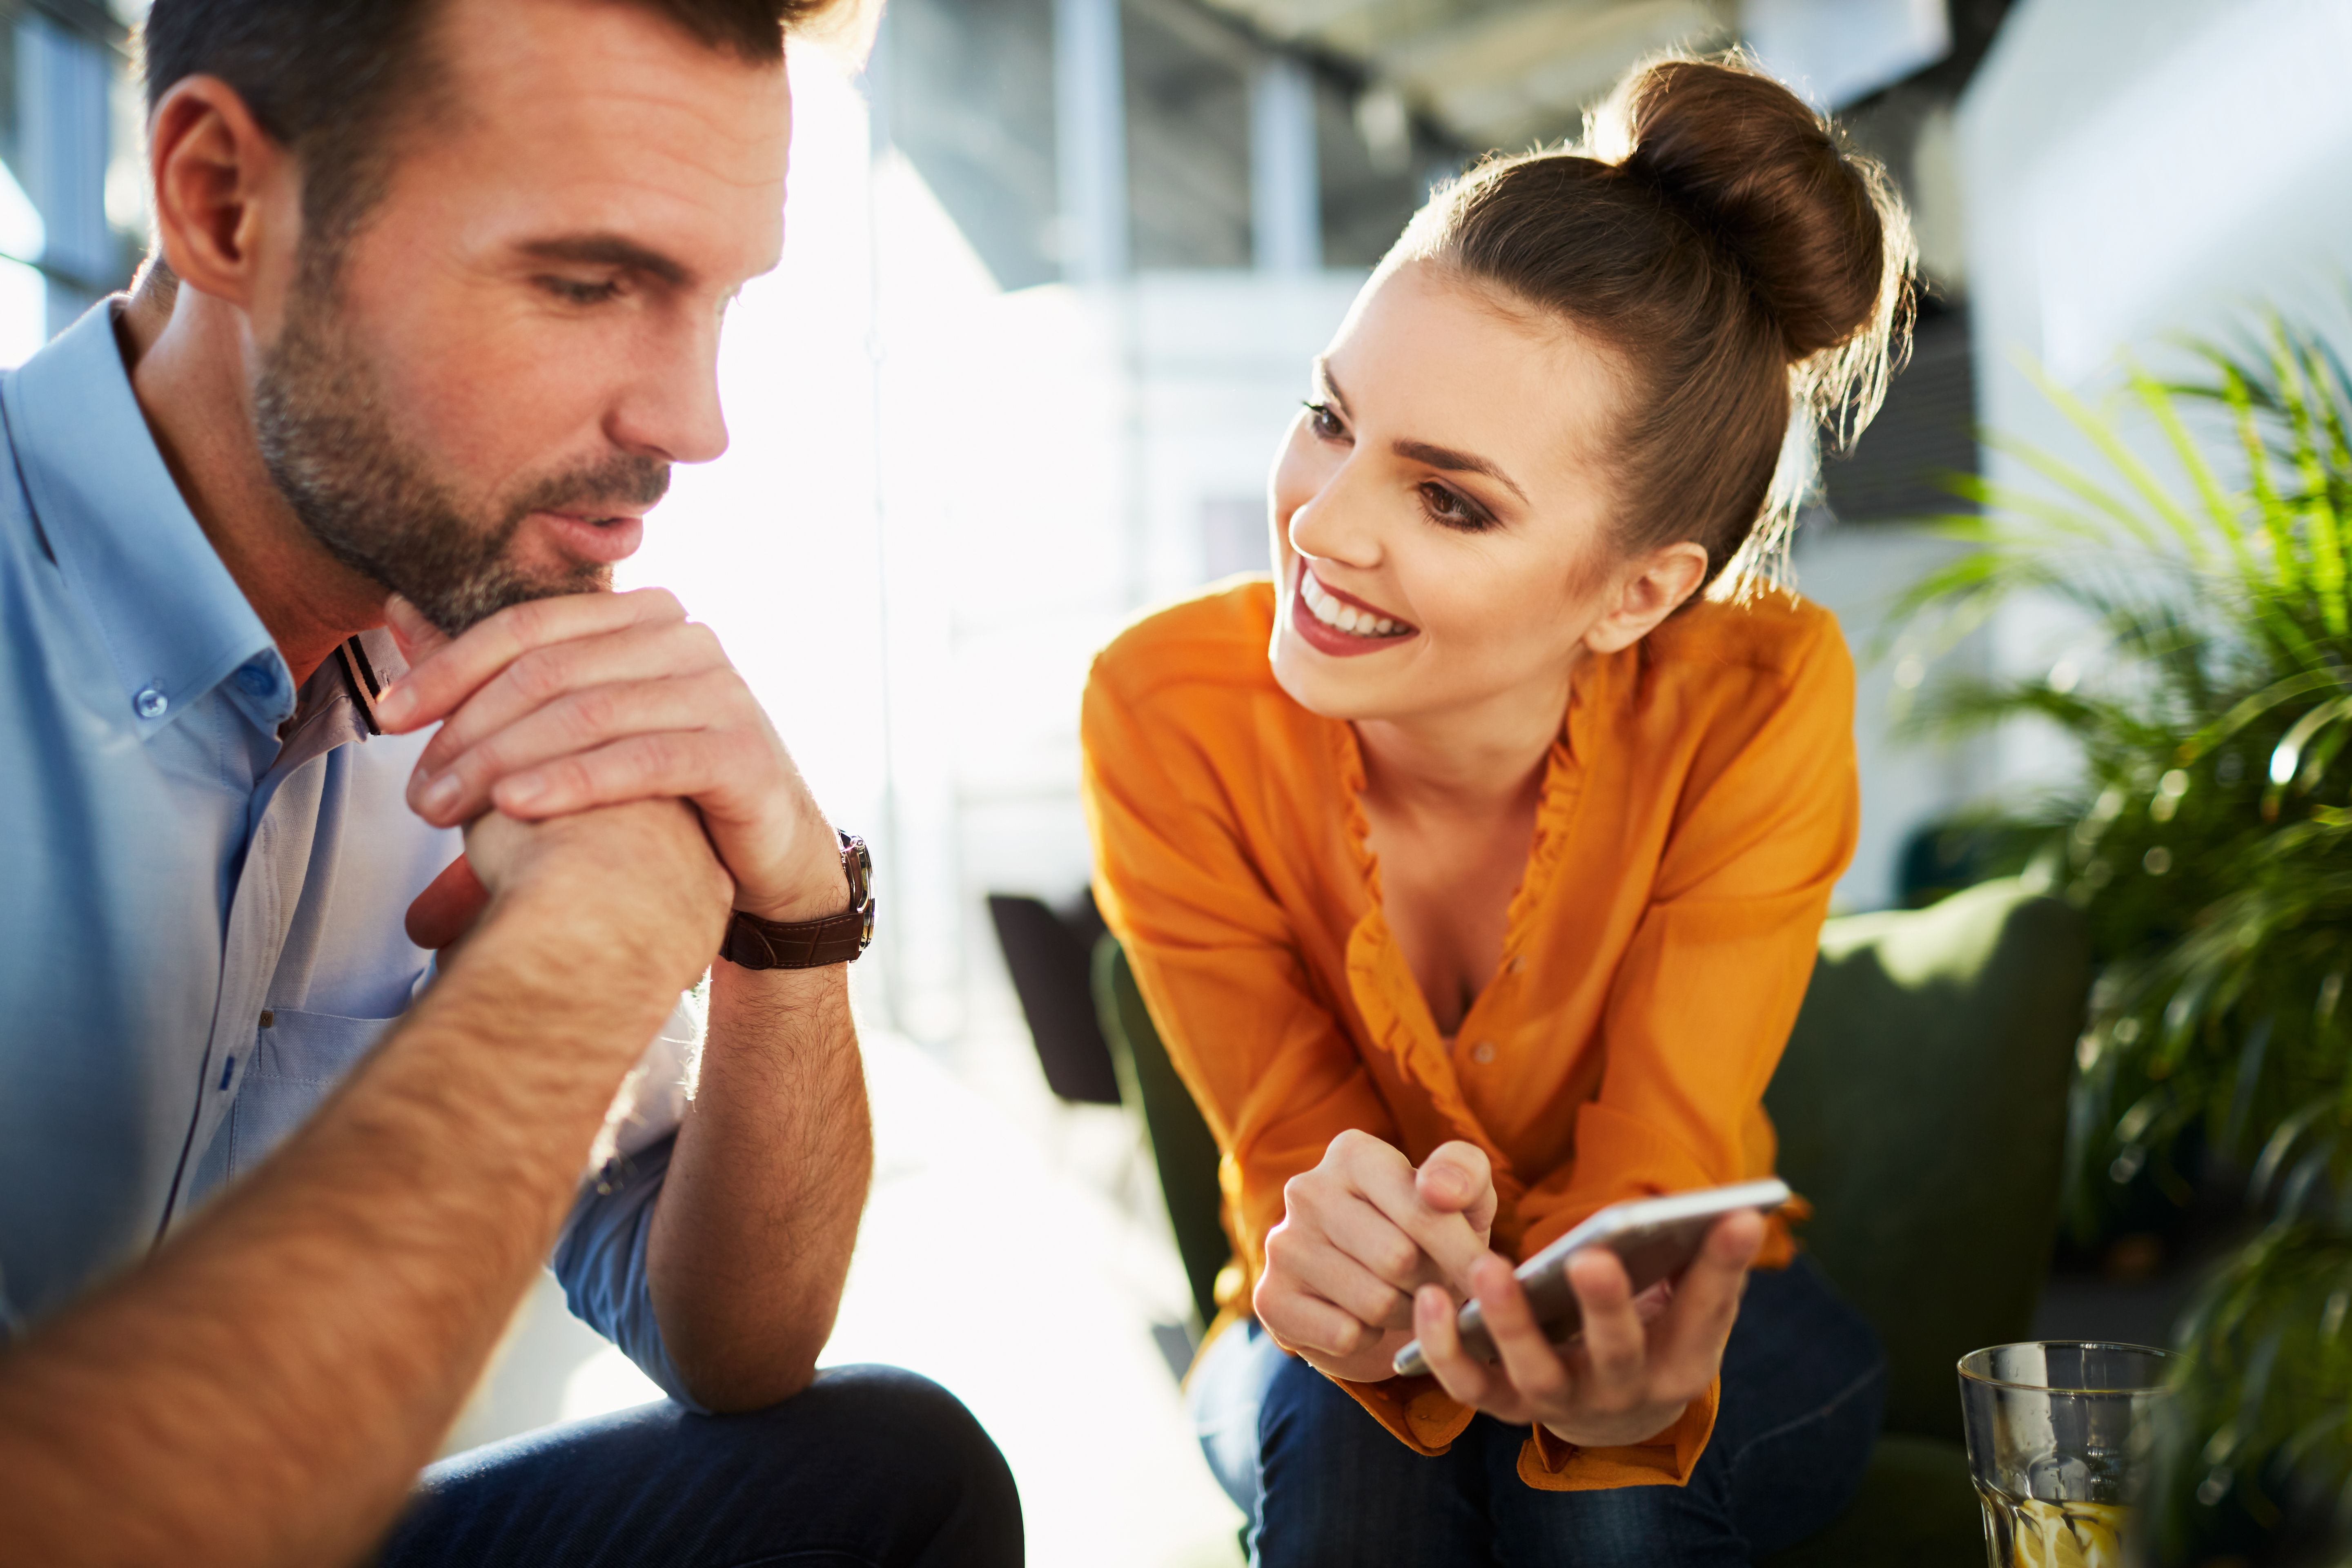 A couple at work talking. | Photo: Shutterstock